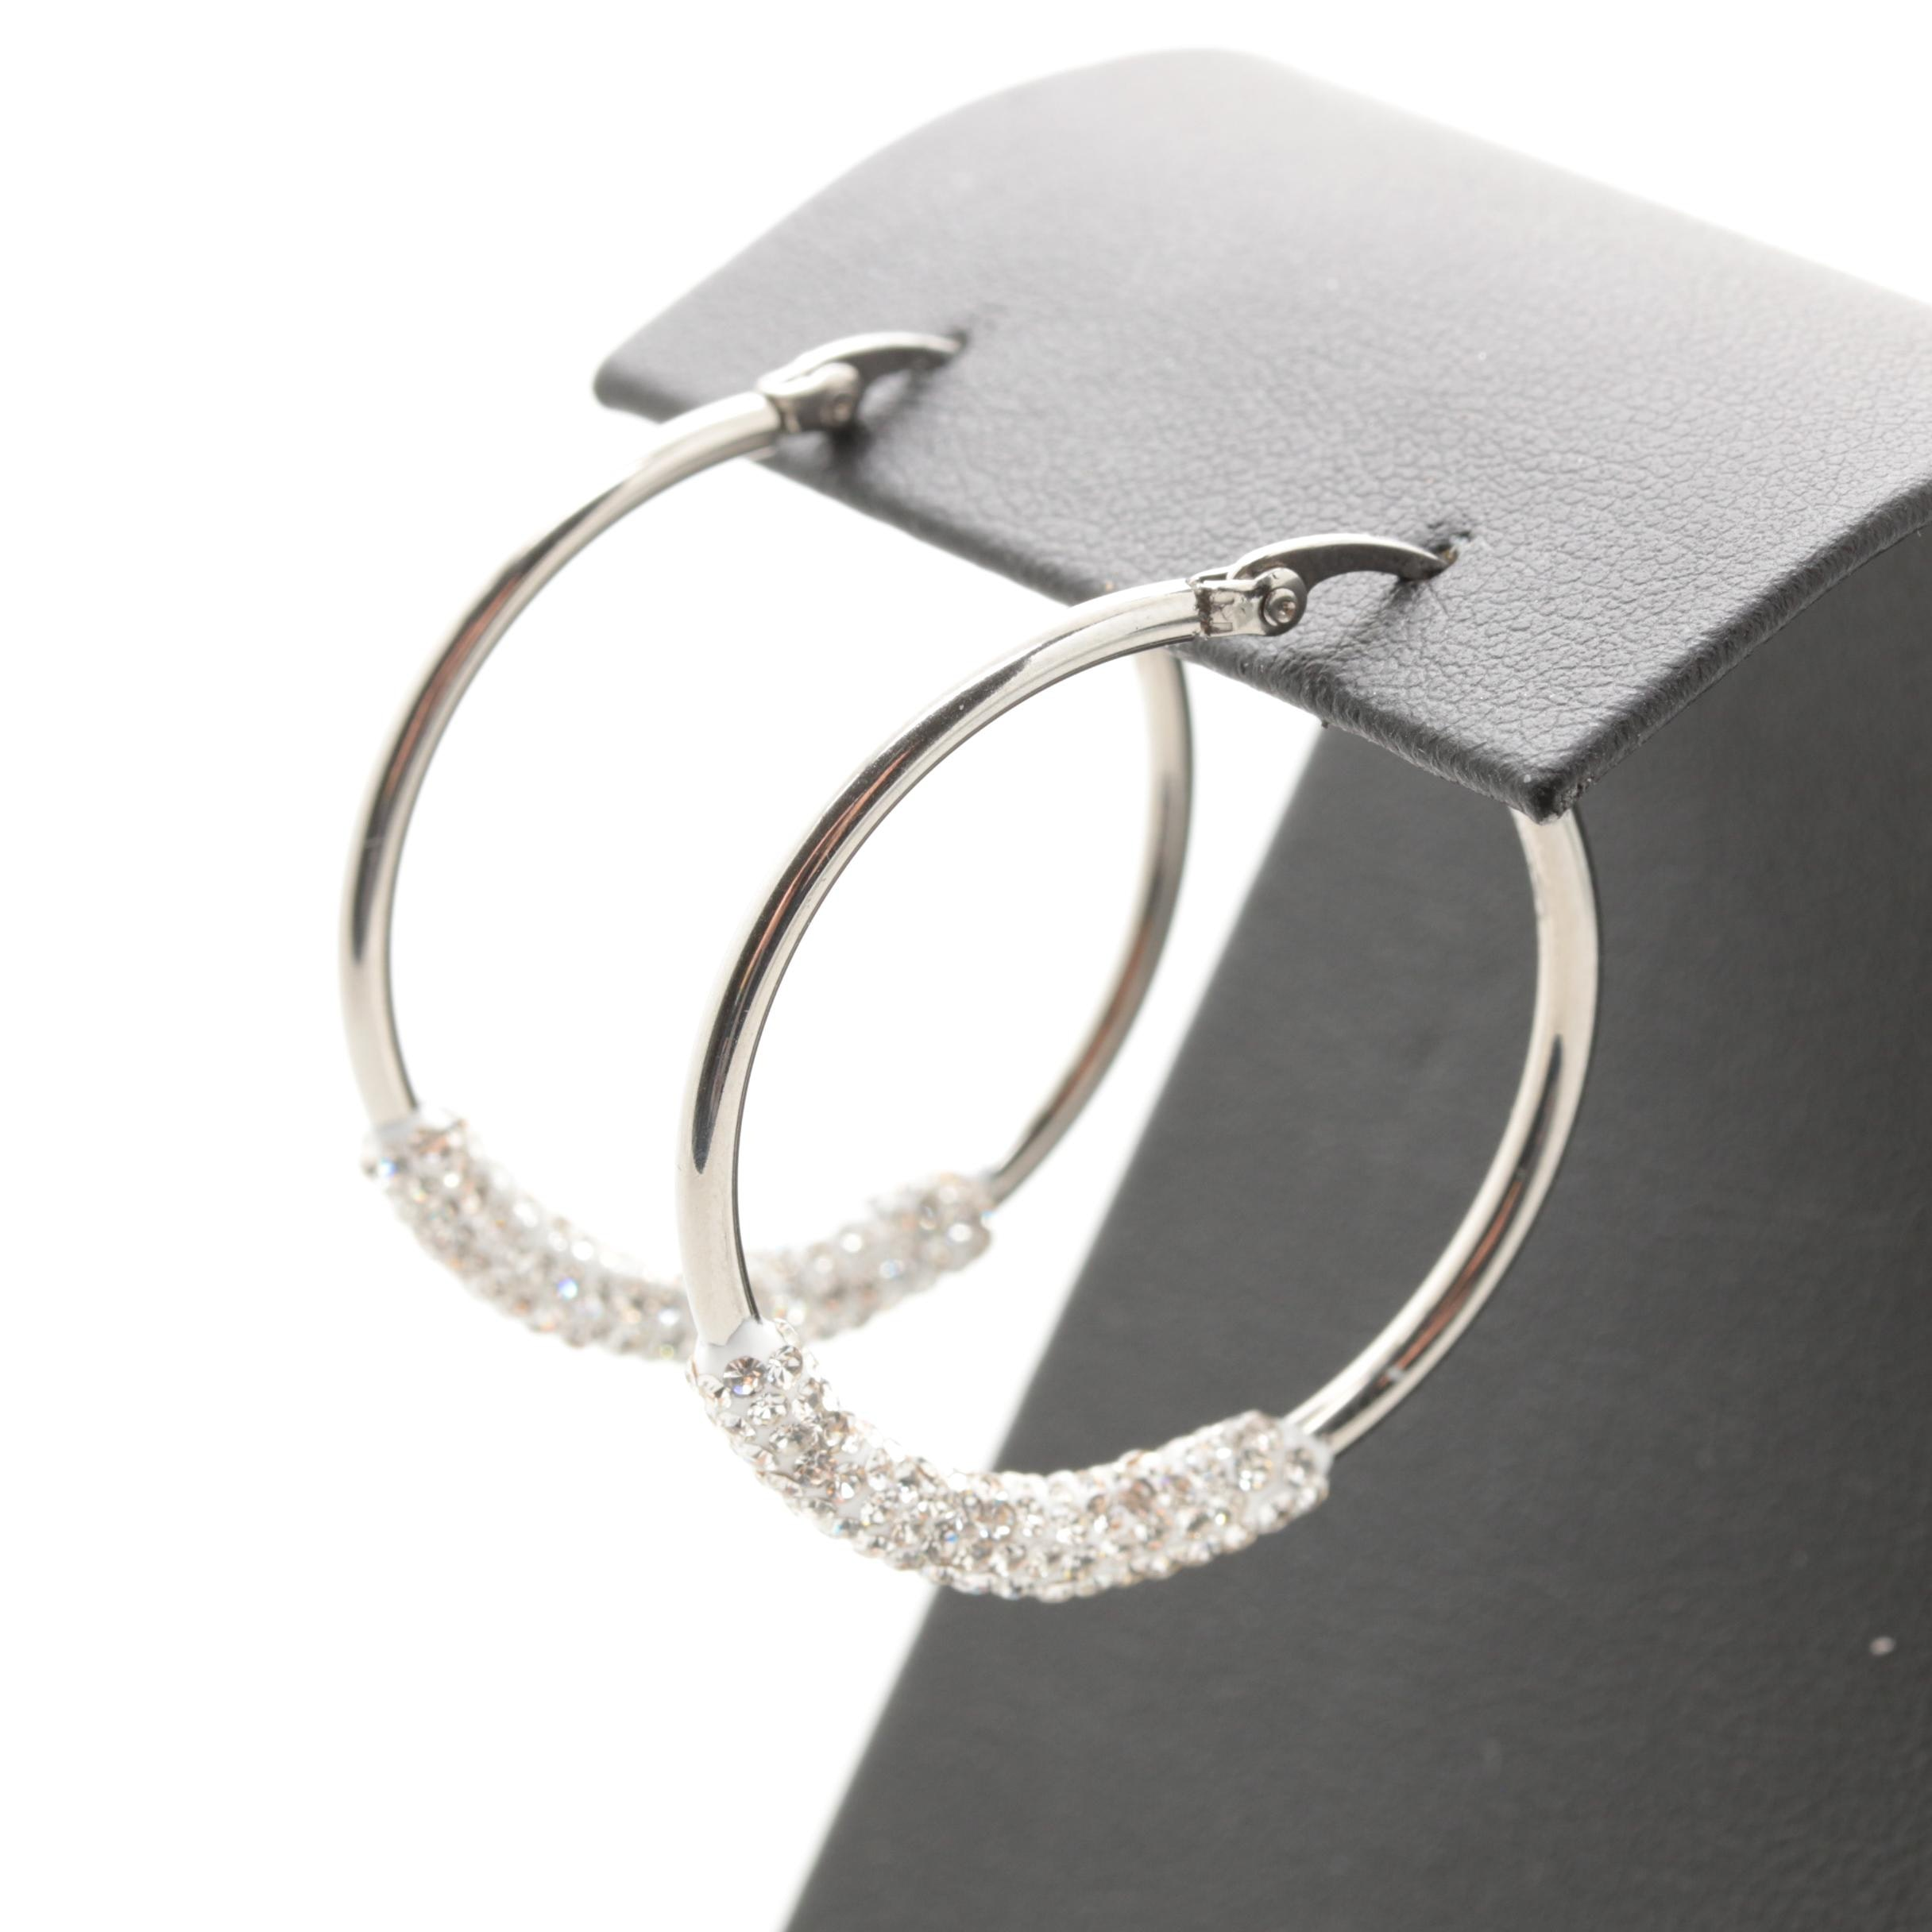 Silver Tone Foilback Glass Hoop Earrings